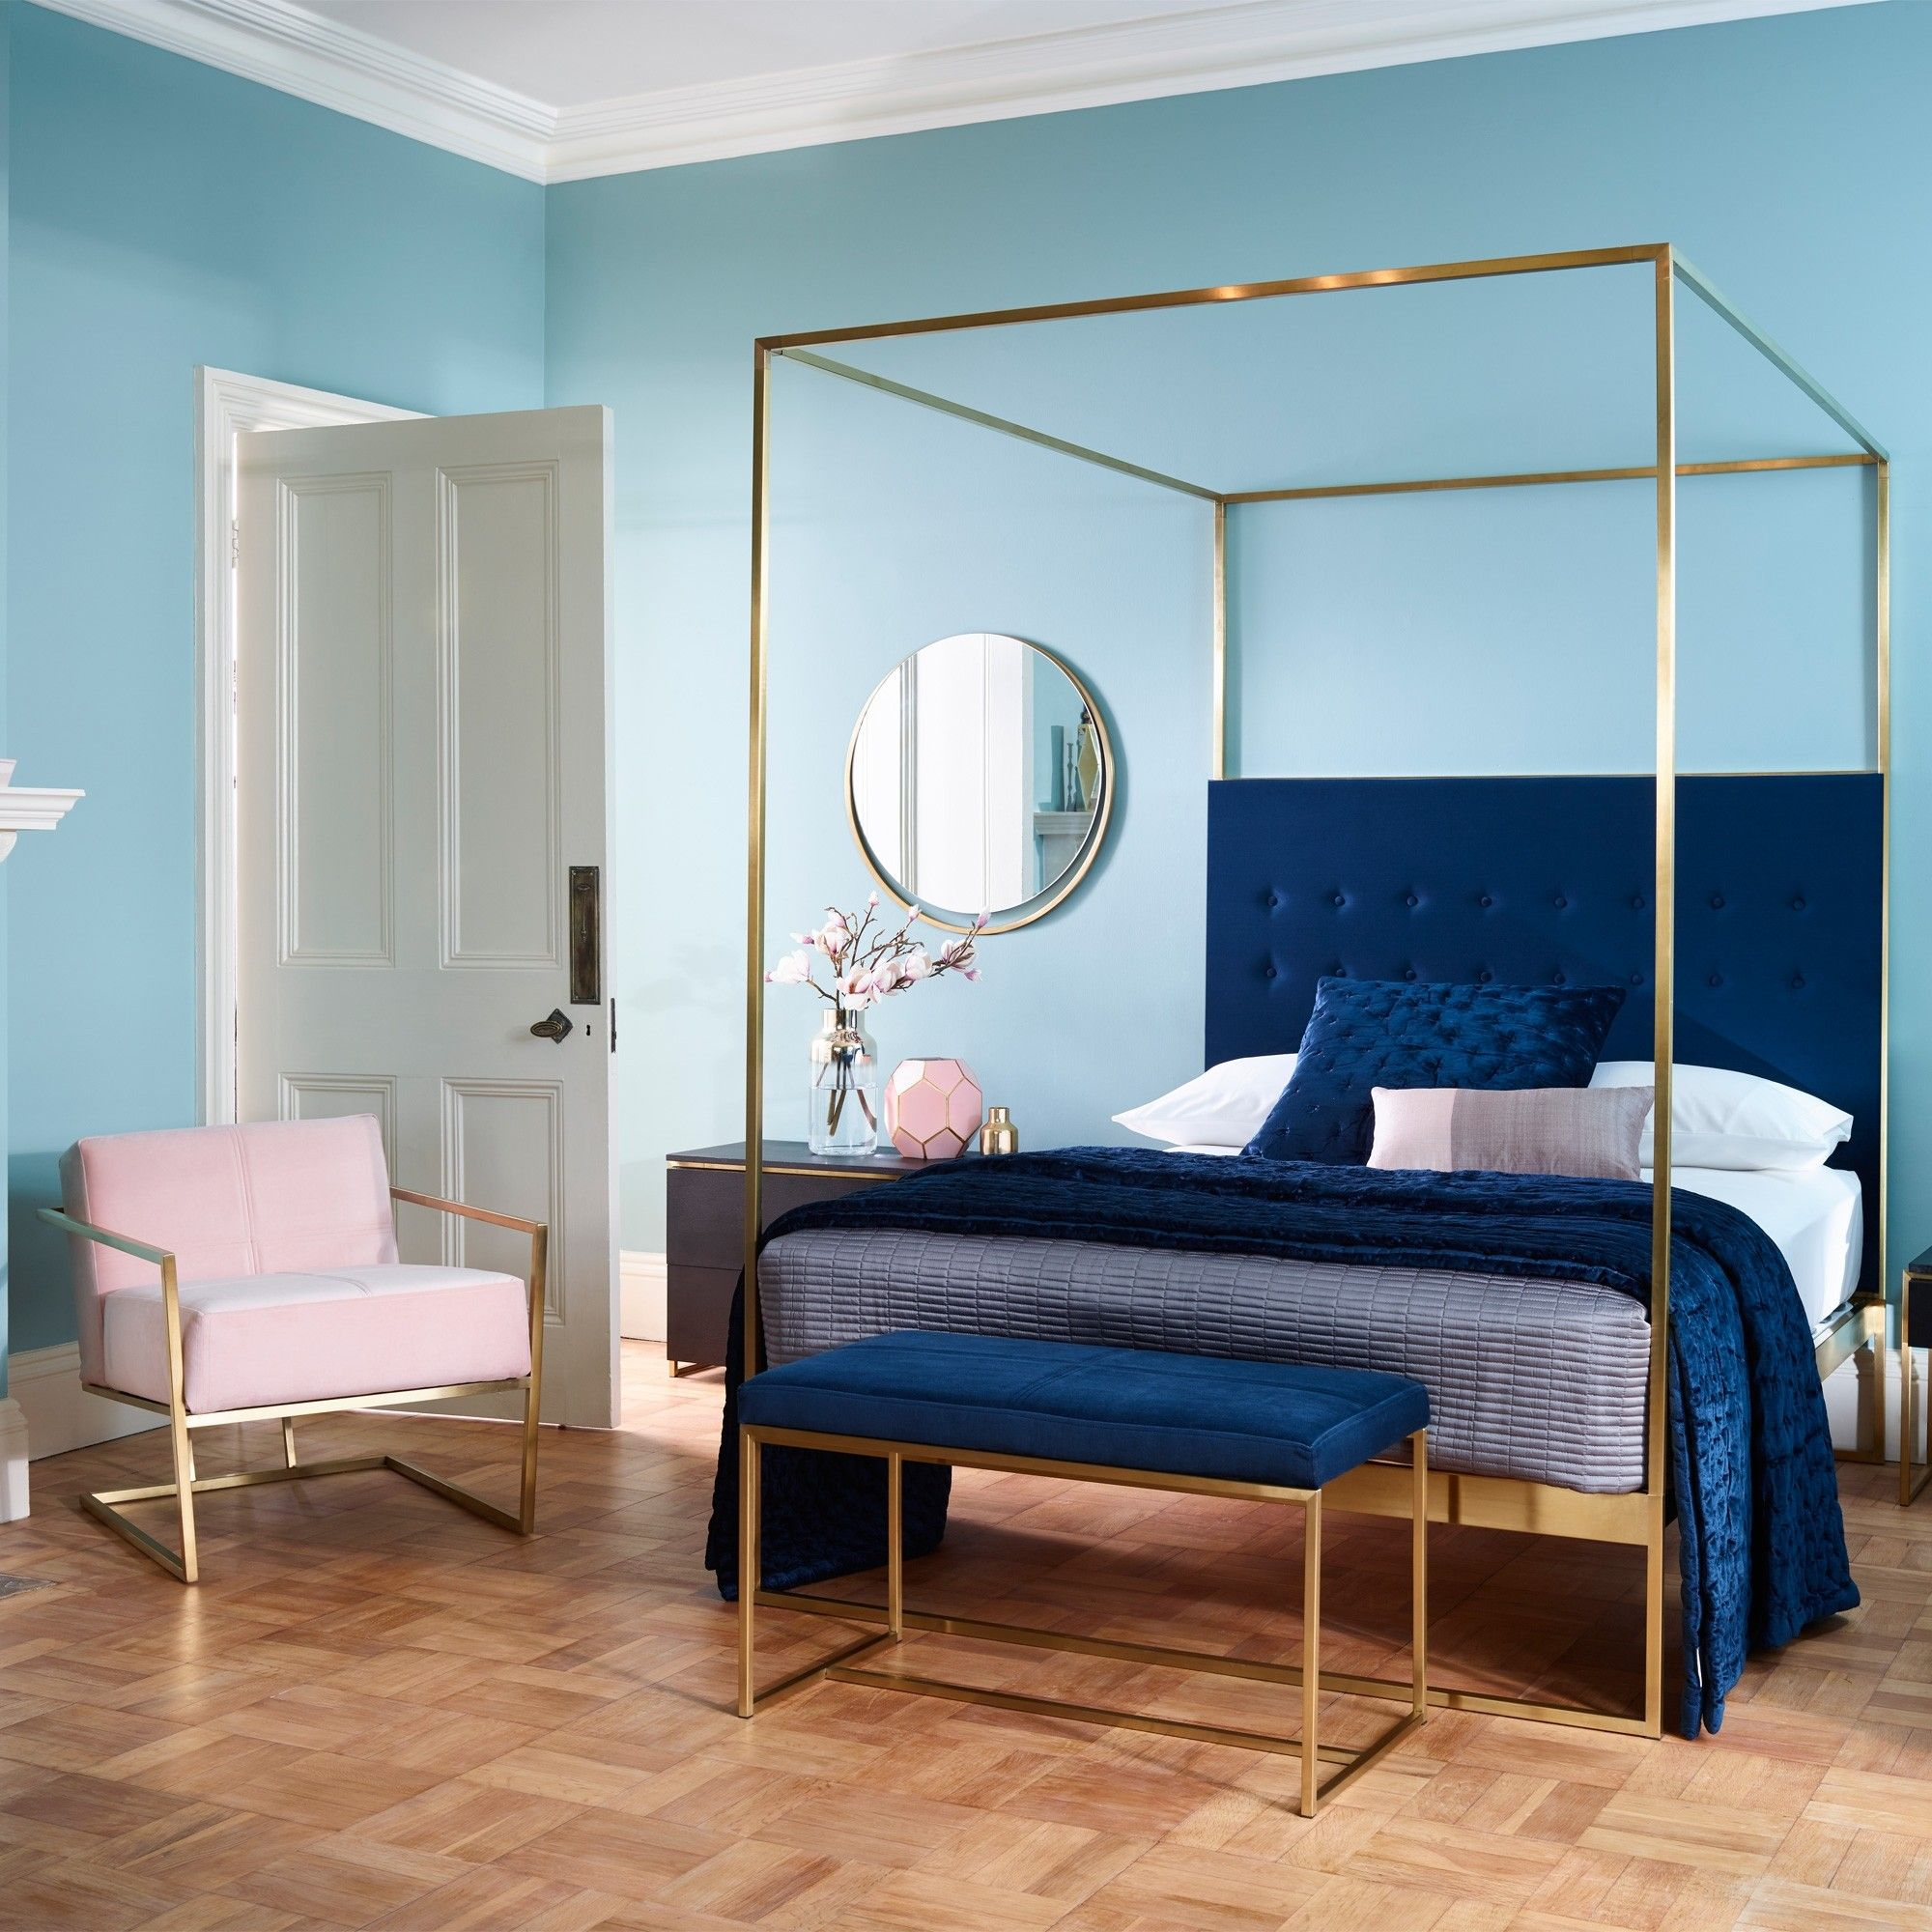 Gold Frame Canopy Bed With Blue Headboard King Canopy